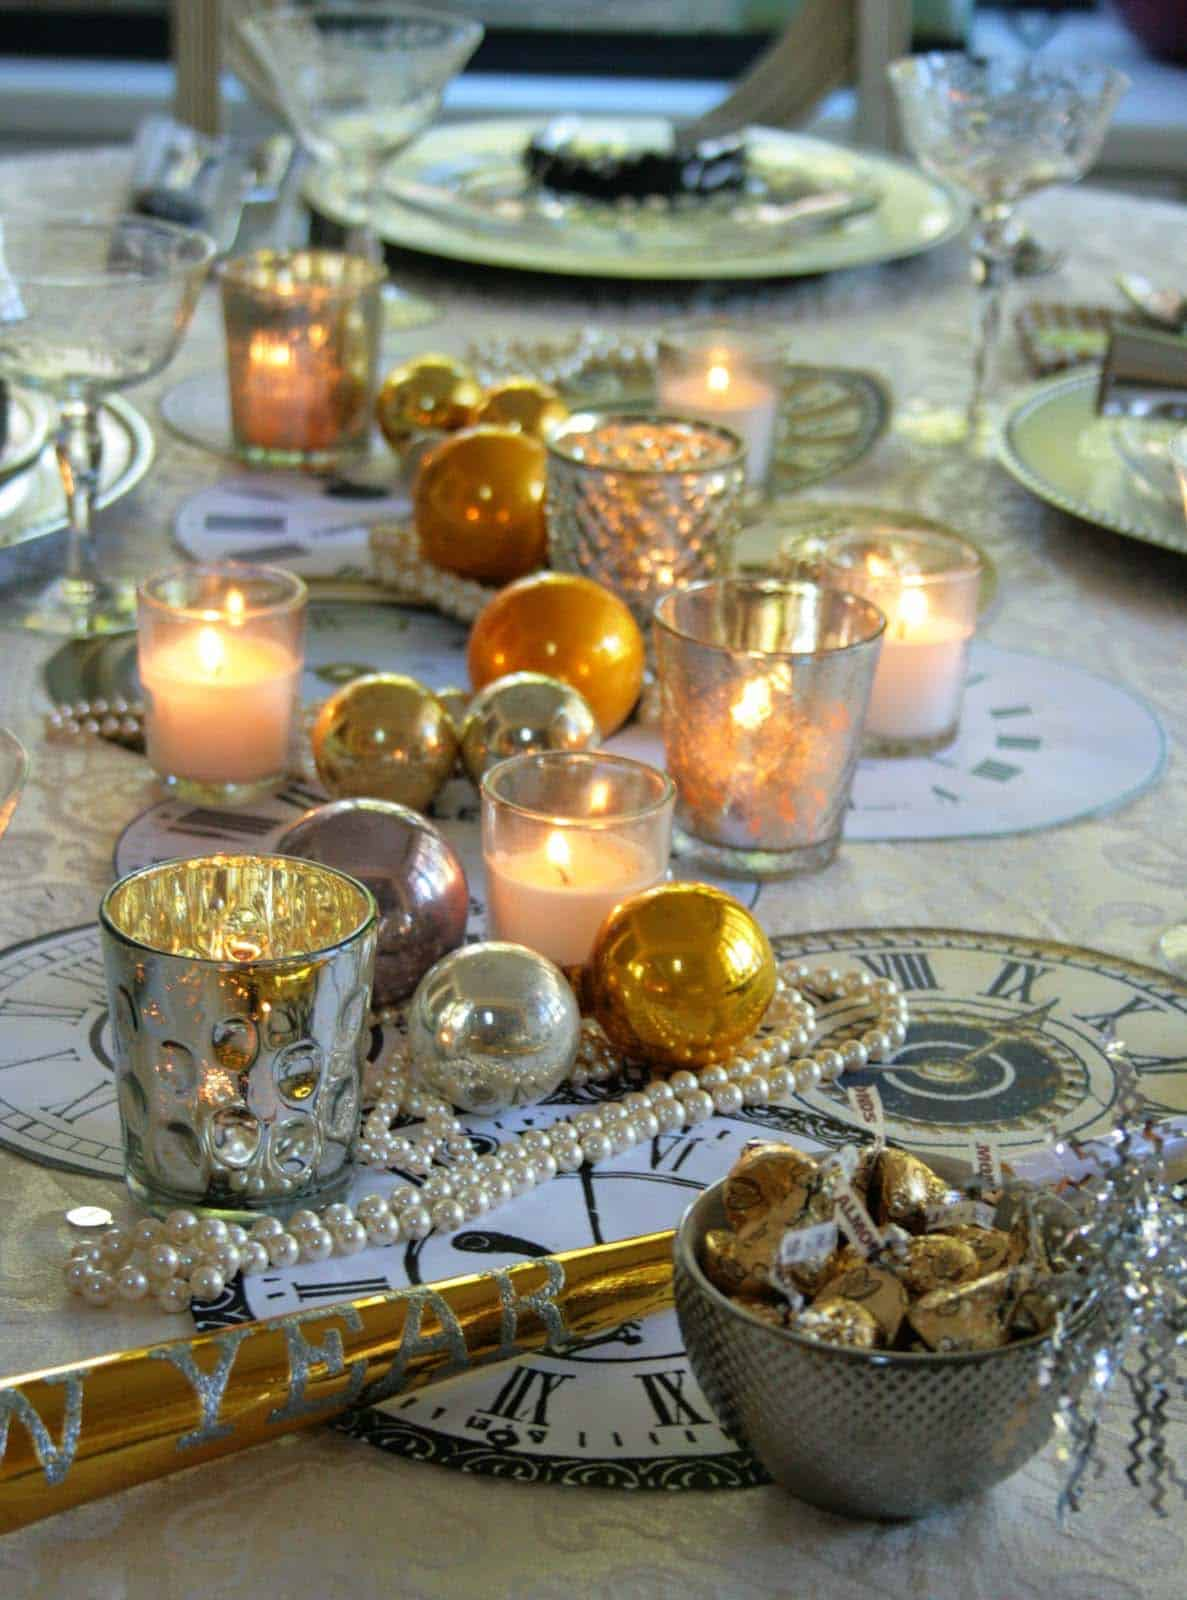 Glamorous Party Table Settings For New Years Eve-13-1 Kindesign